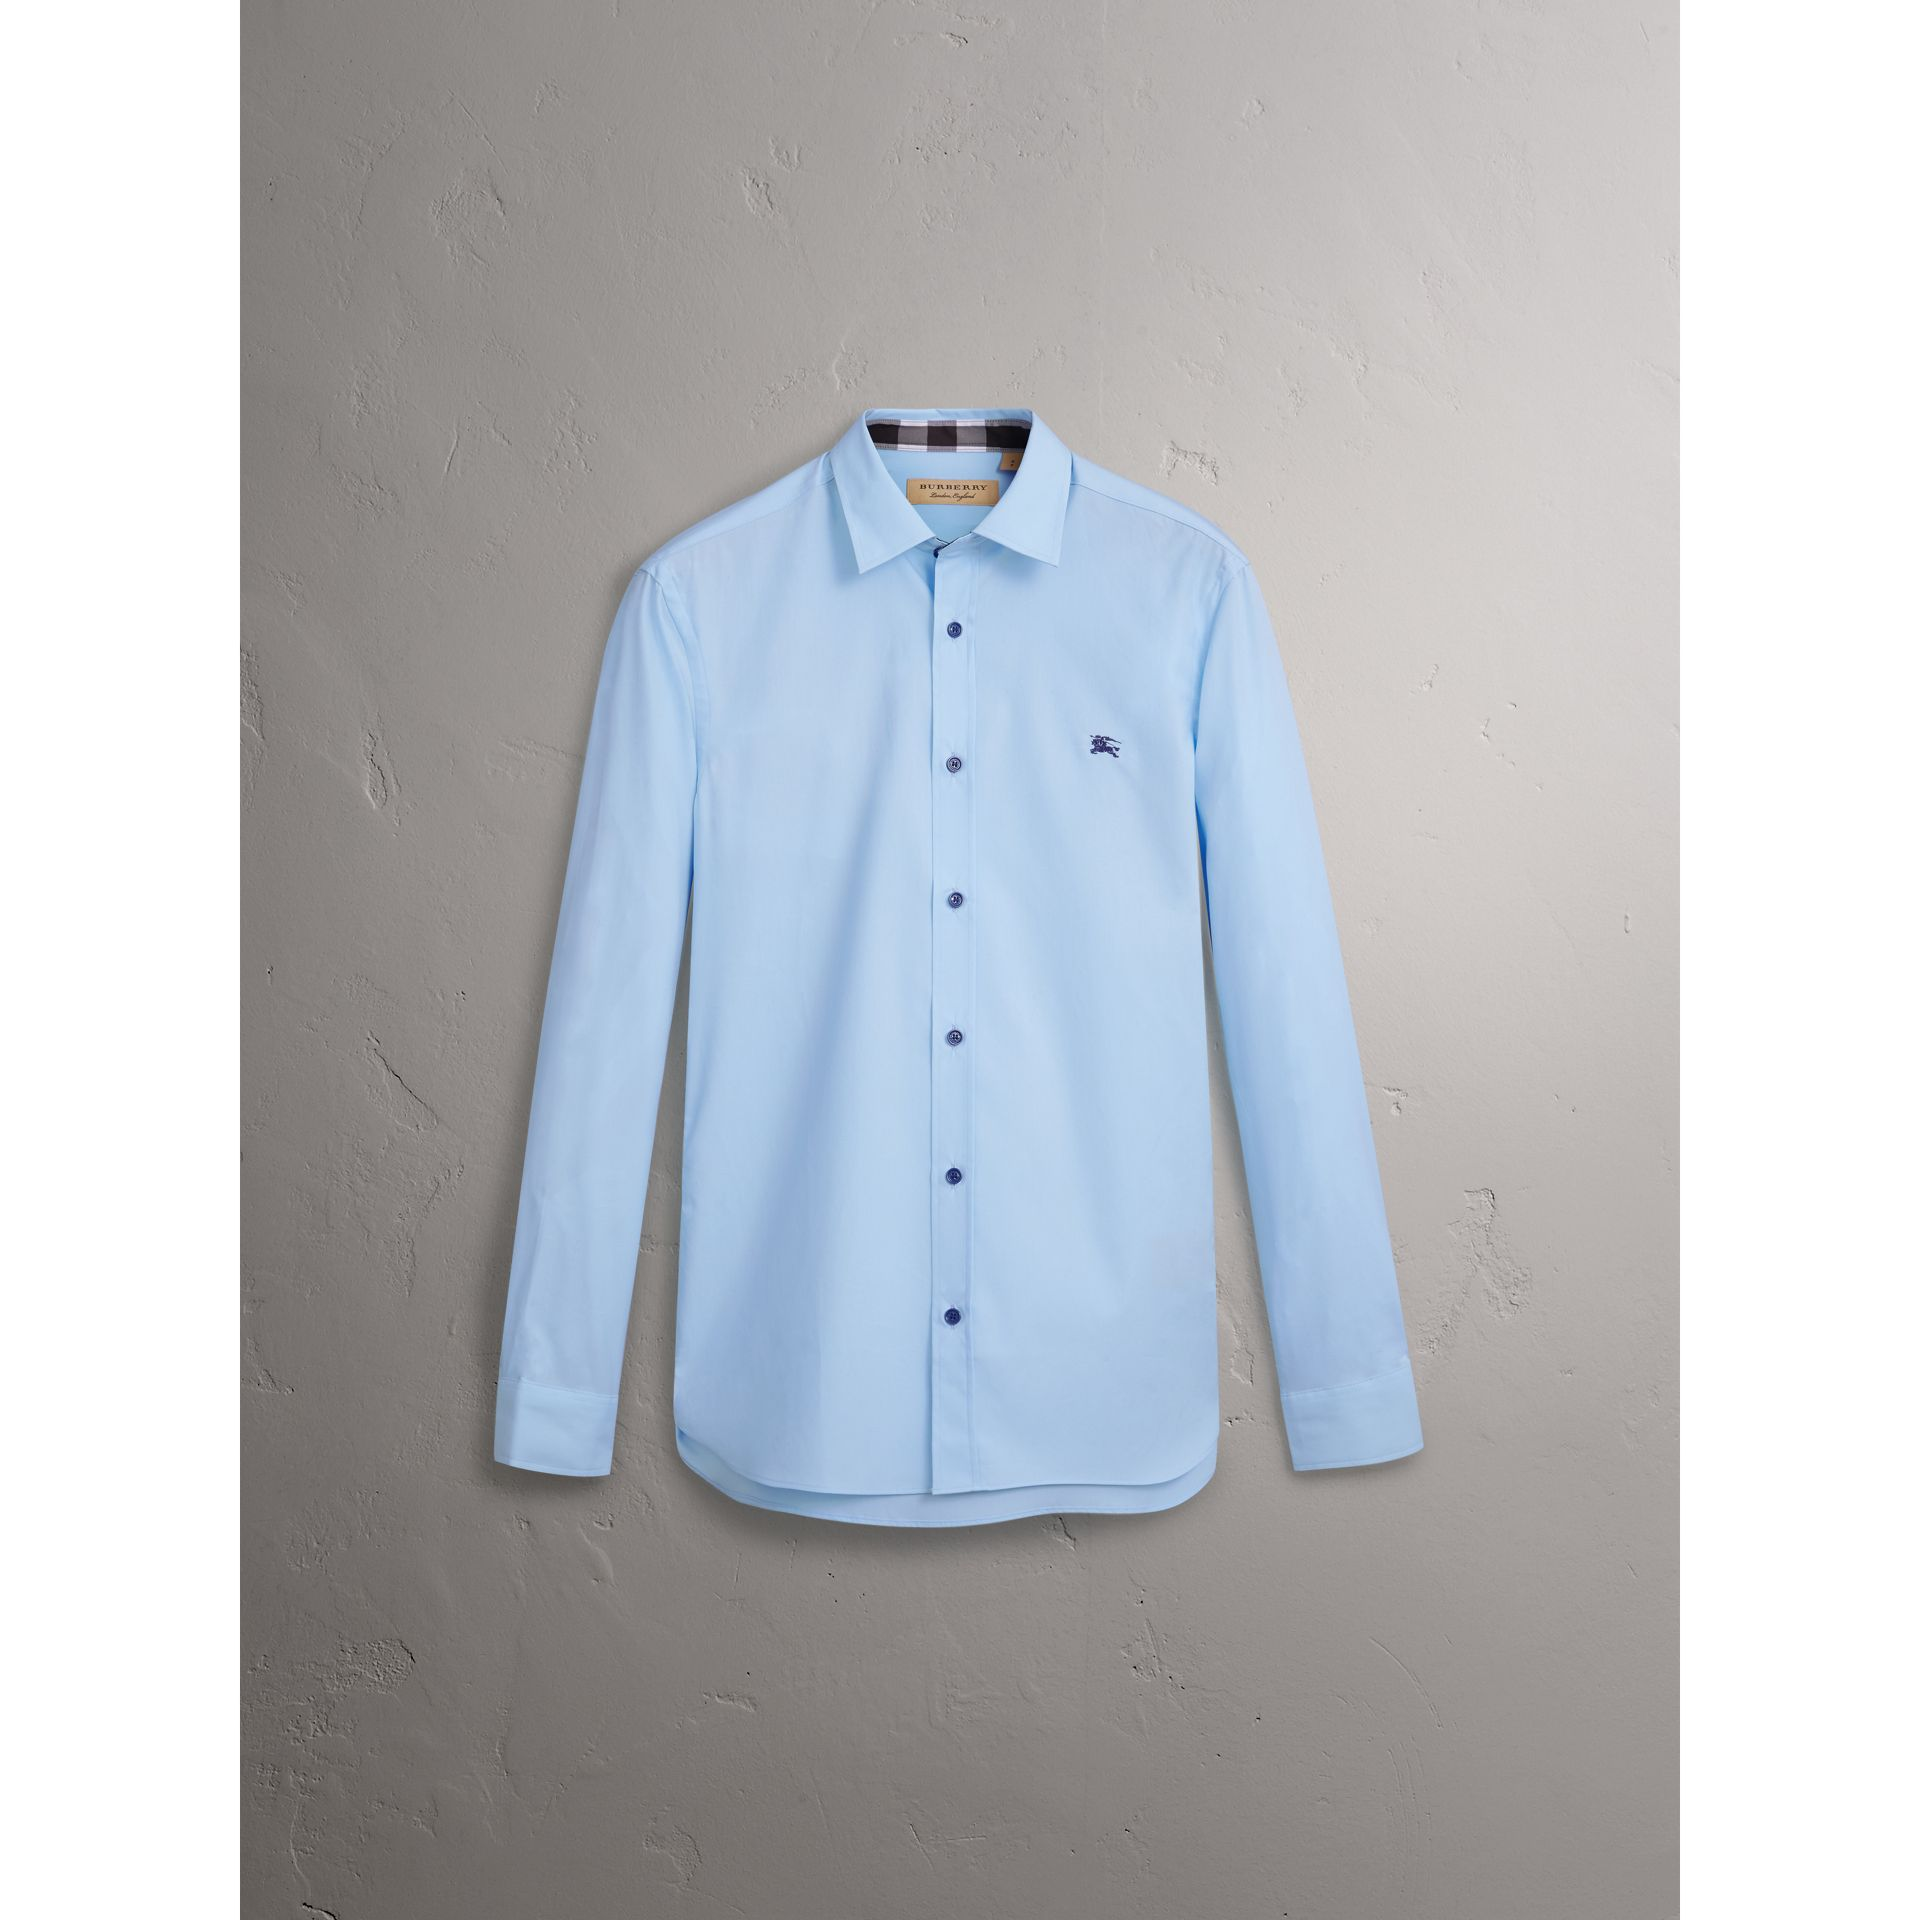 Resin Button Cotton Poplin Shirt in Pale Blue - Men | Burberry - gallery image 3